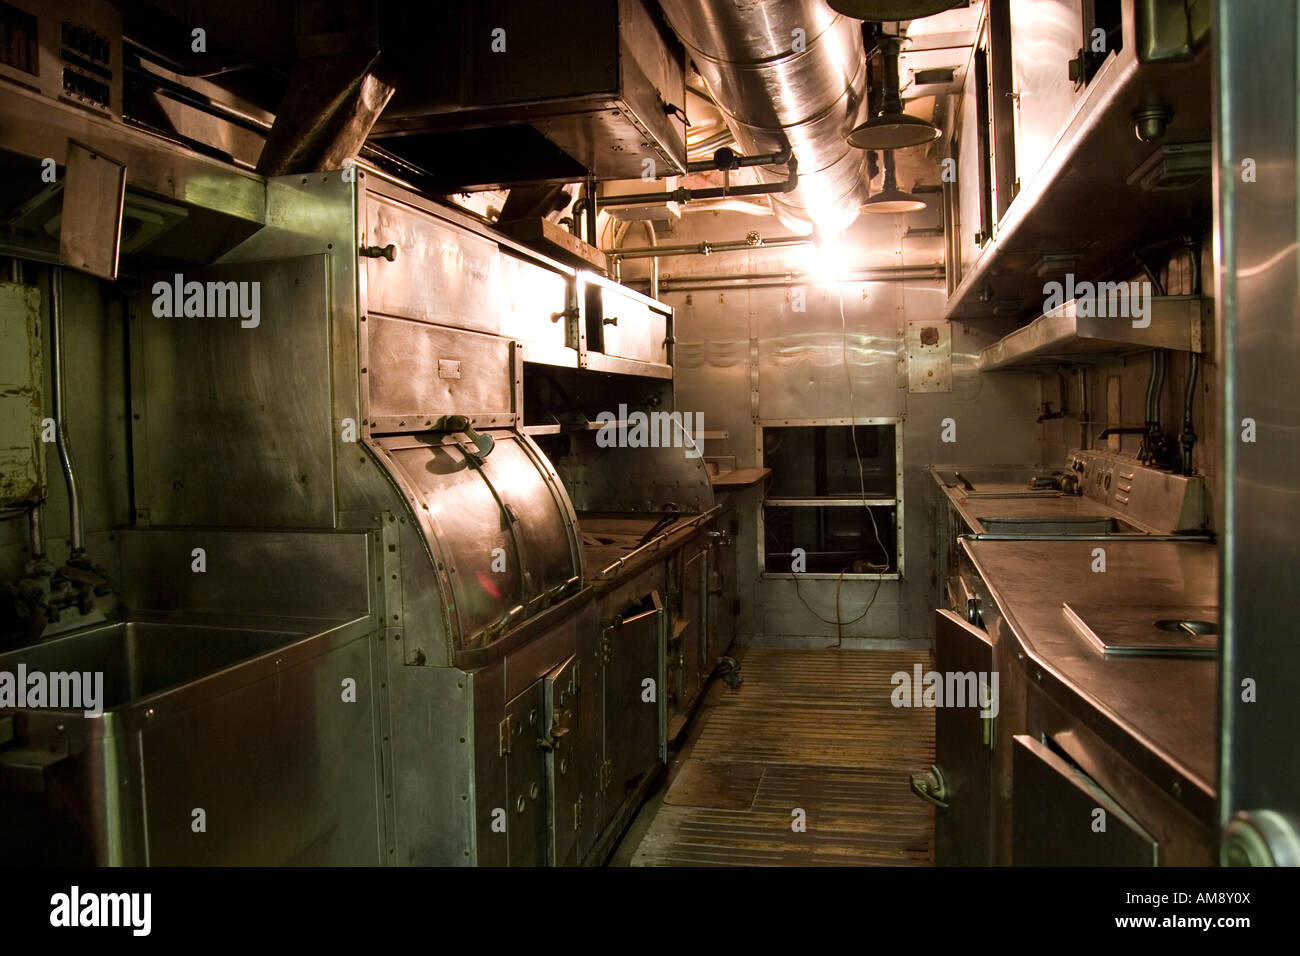 Kitchen Train High Resolution Stock Photography And Images Alamy